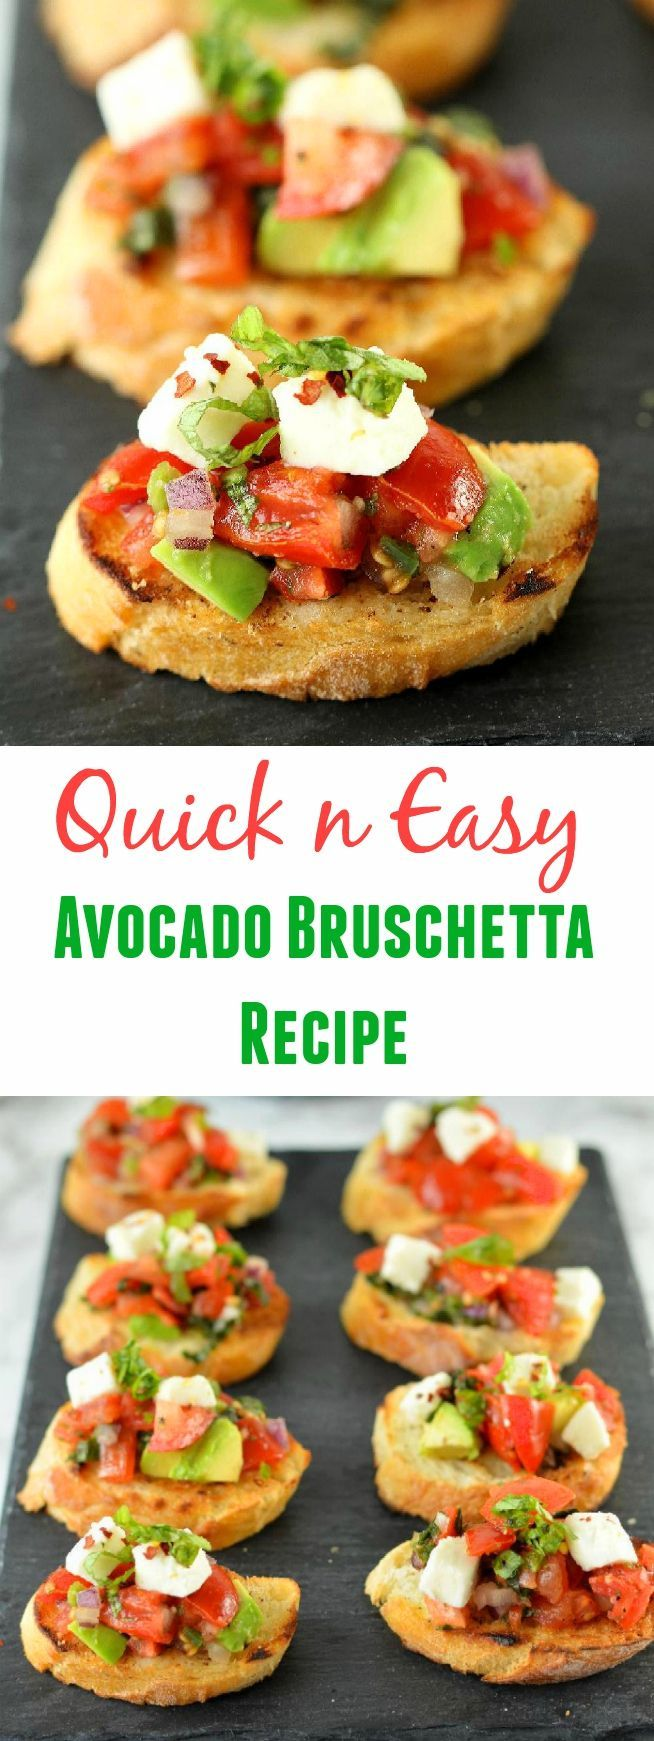 Quick and Easy Avocado Bruschetta Recipe comes together in 15 minutes. A platter full of this finger food makes quite a statement and is a perfect crowd-pleasing recipe for game day!